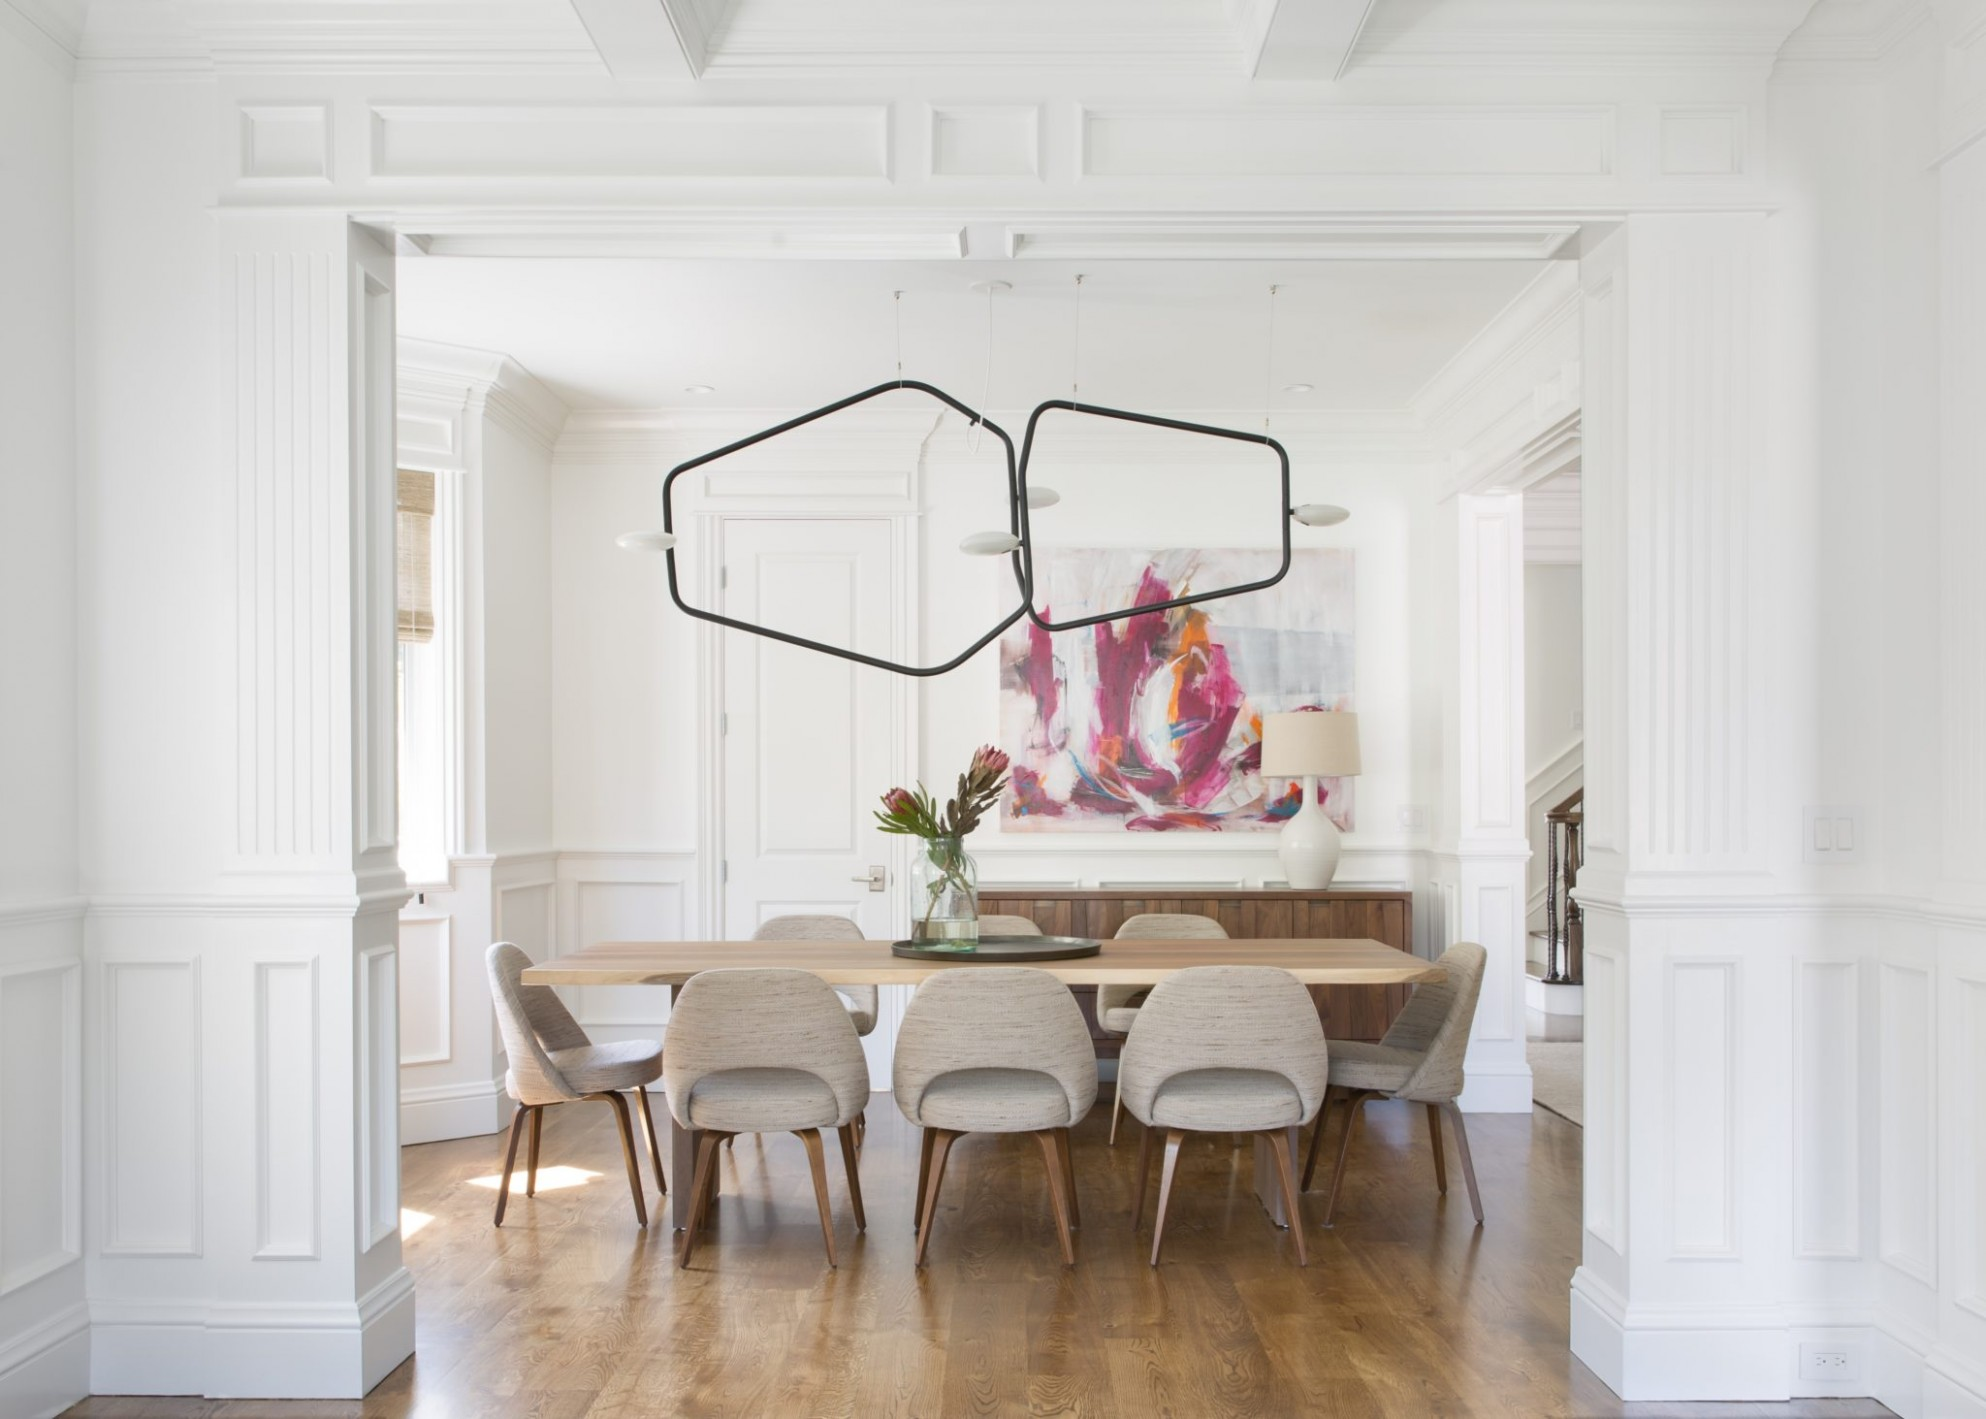 12 Dining Rooms with Wainscoting - Chairish Blog - Dining Room Ideas With Wainscoting